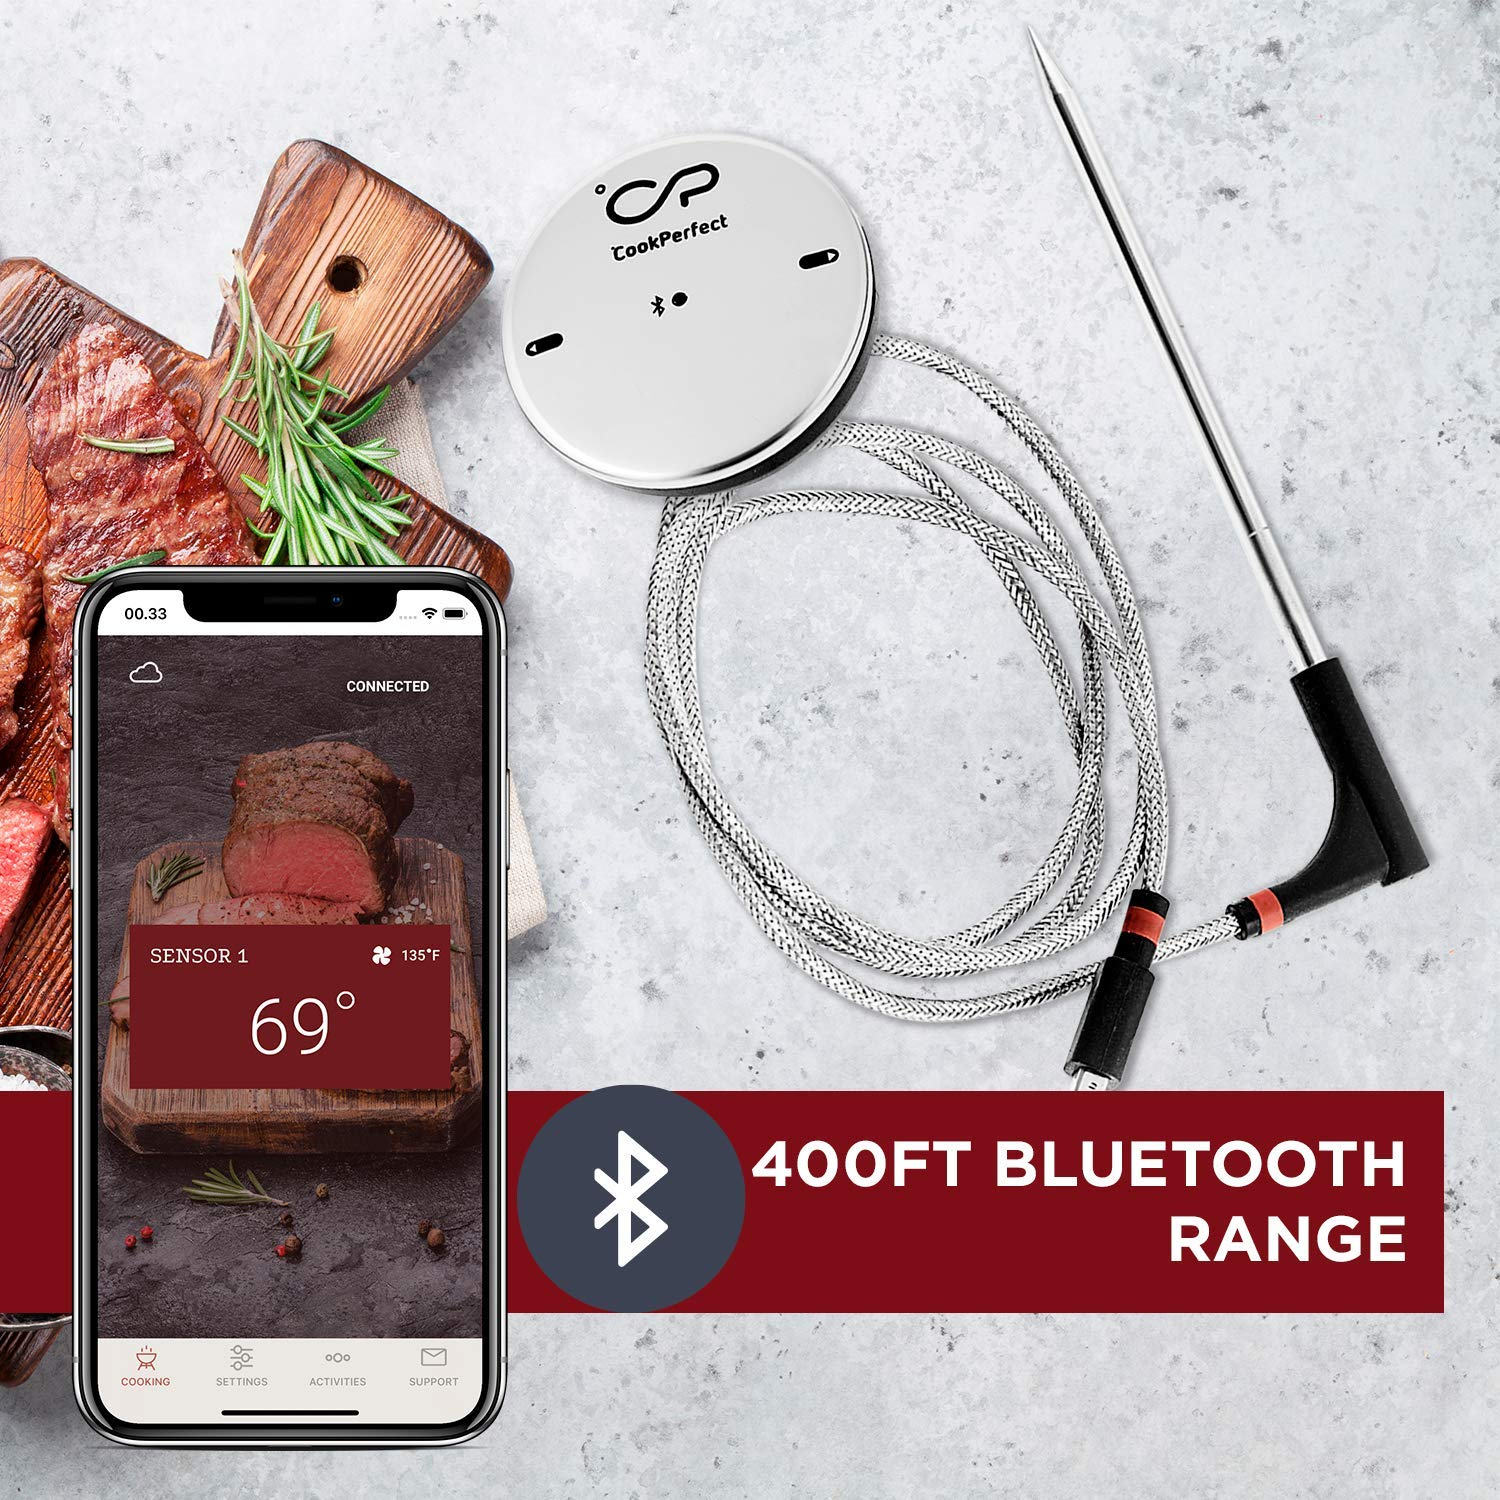 CookPerfect Wireless Meat Thermometer with 400ft Bluetooth Range | Automatic Core and Air Temperature Readings | for BBQ, Oven and Grill Cooking (1 Probe Included) by CookPerfect (Image #4)